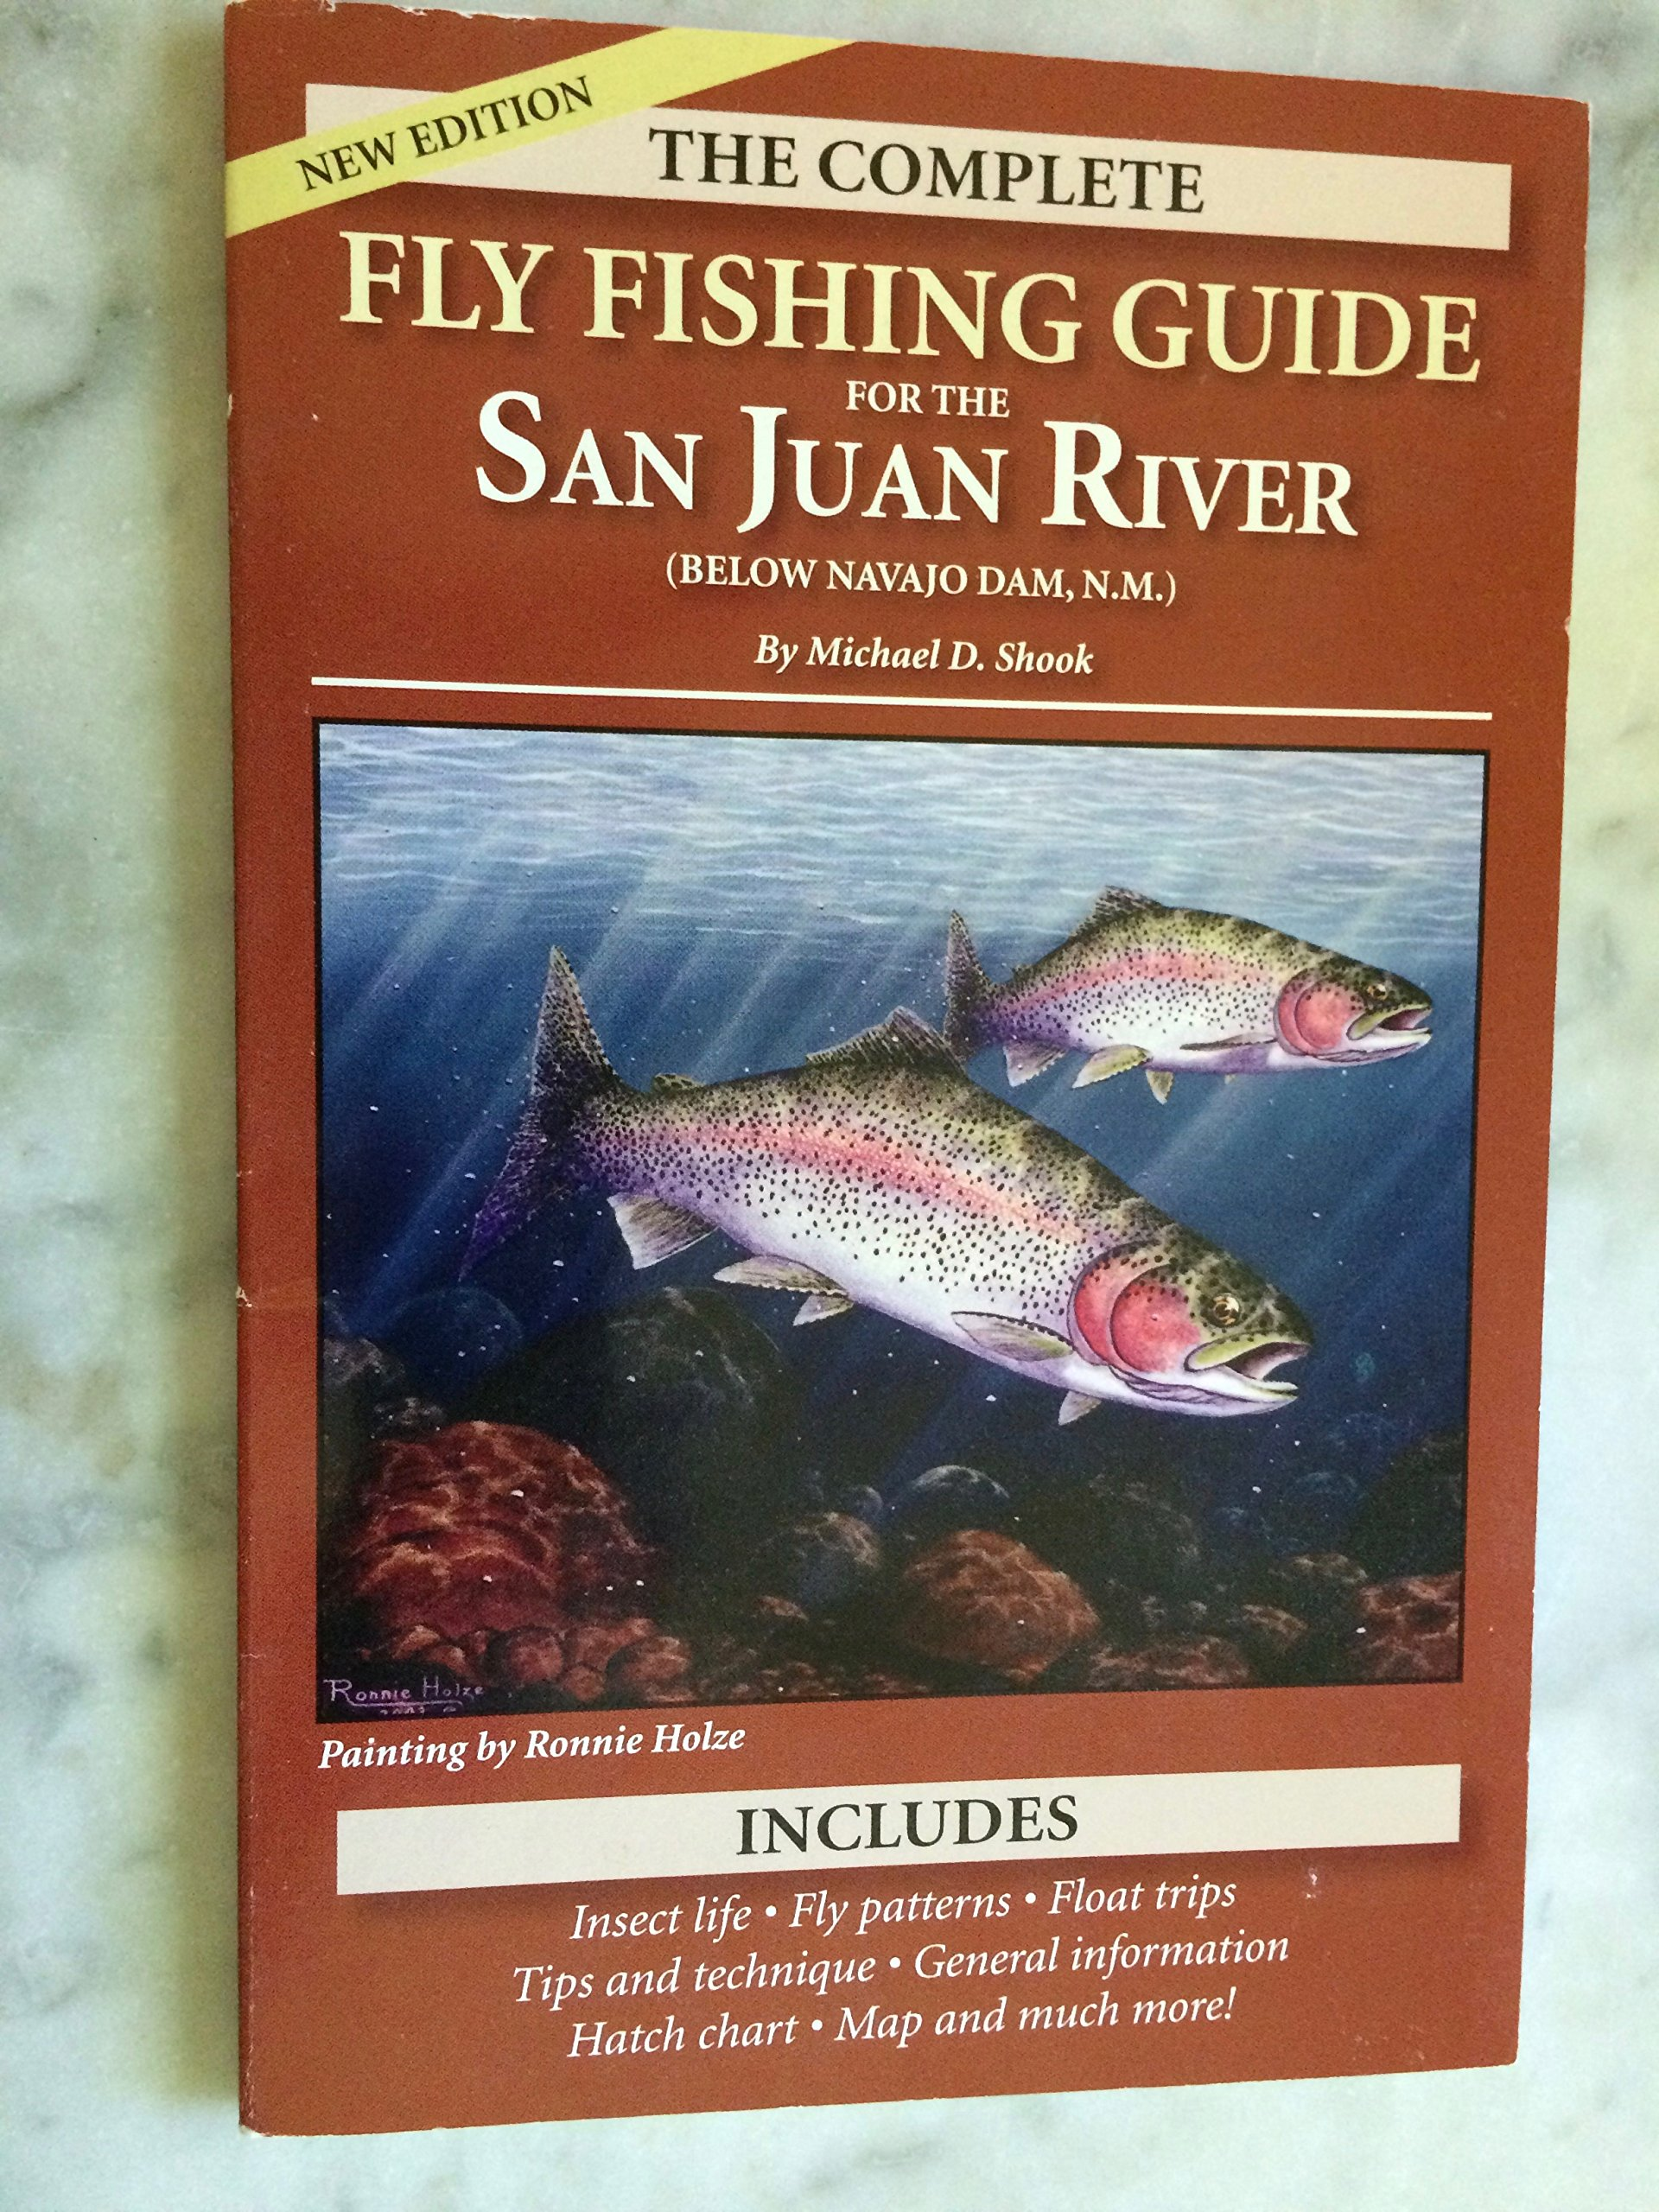 The Complete Fly Fishing Guide to the San Juan River (Below Navajo Dam,  N.M.), Second Edition: Michael D. Shook: 9781889450162: Amazon.com: Books